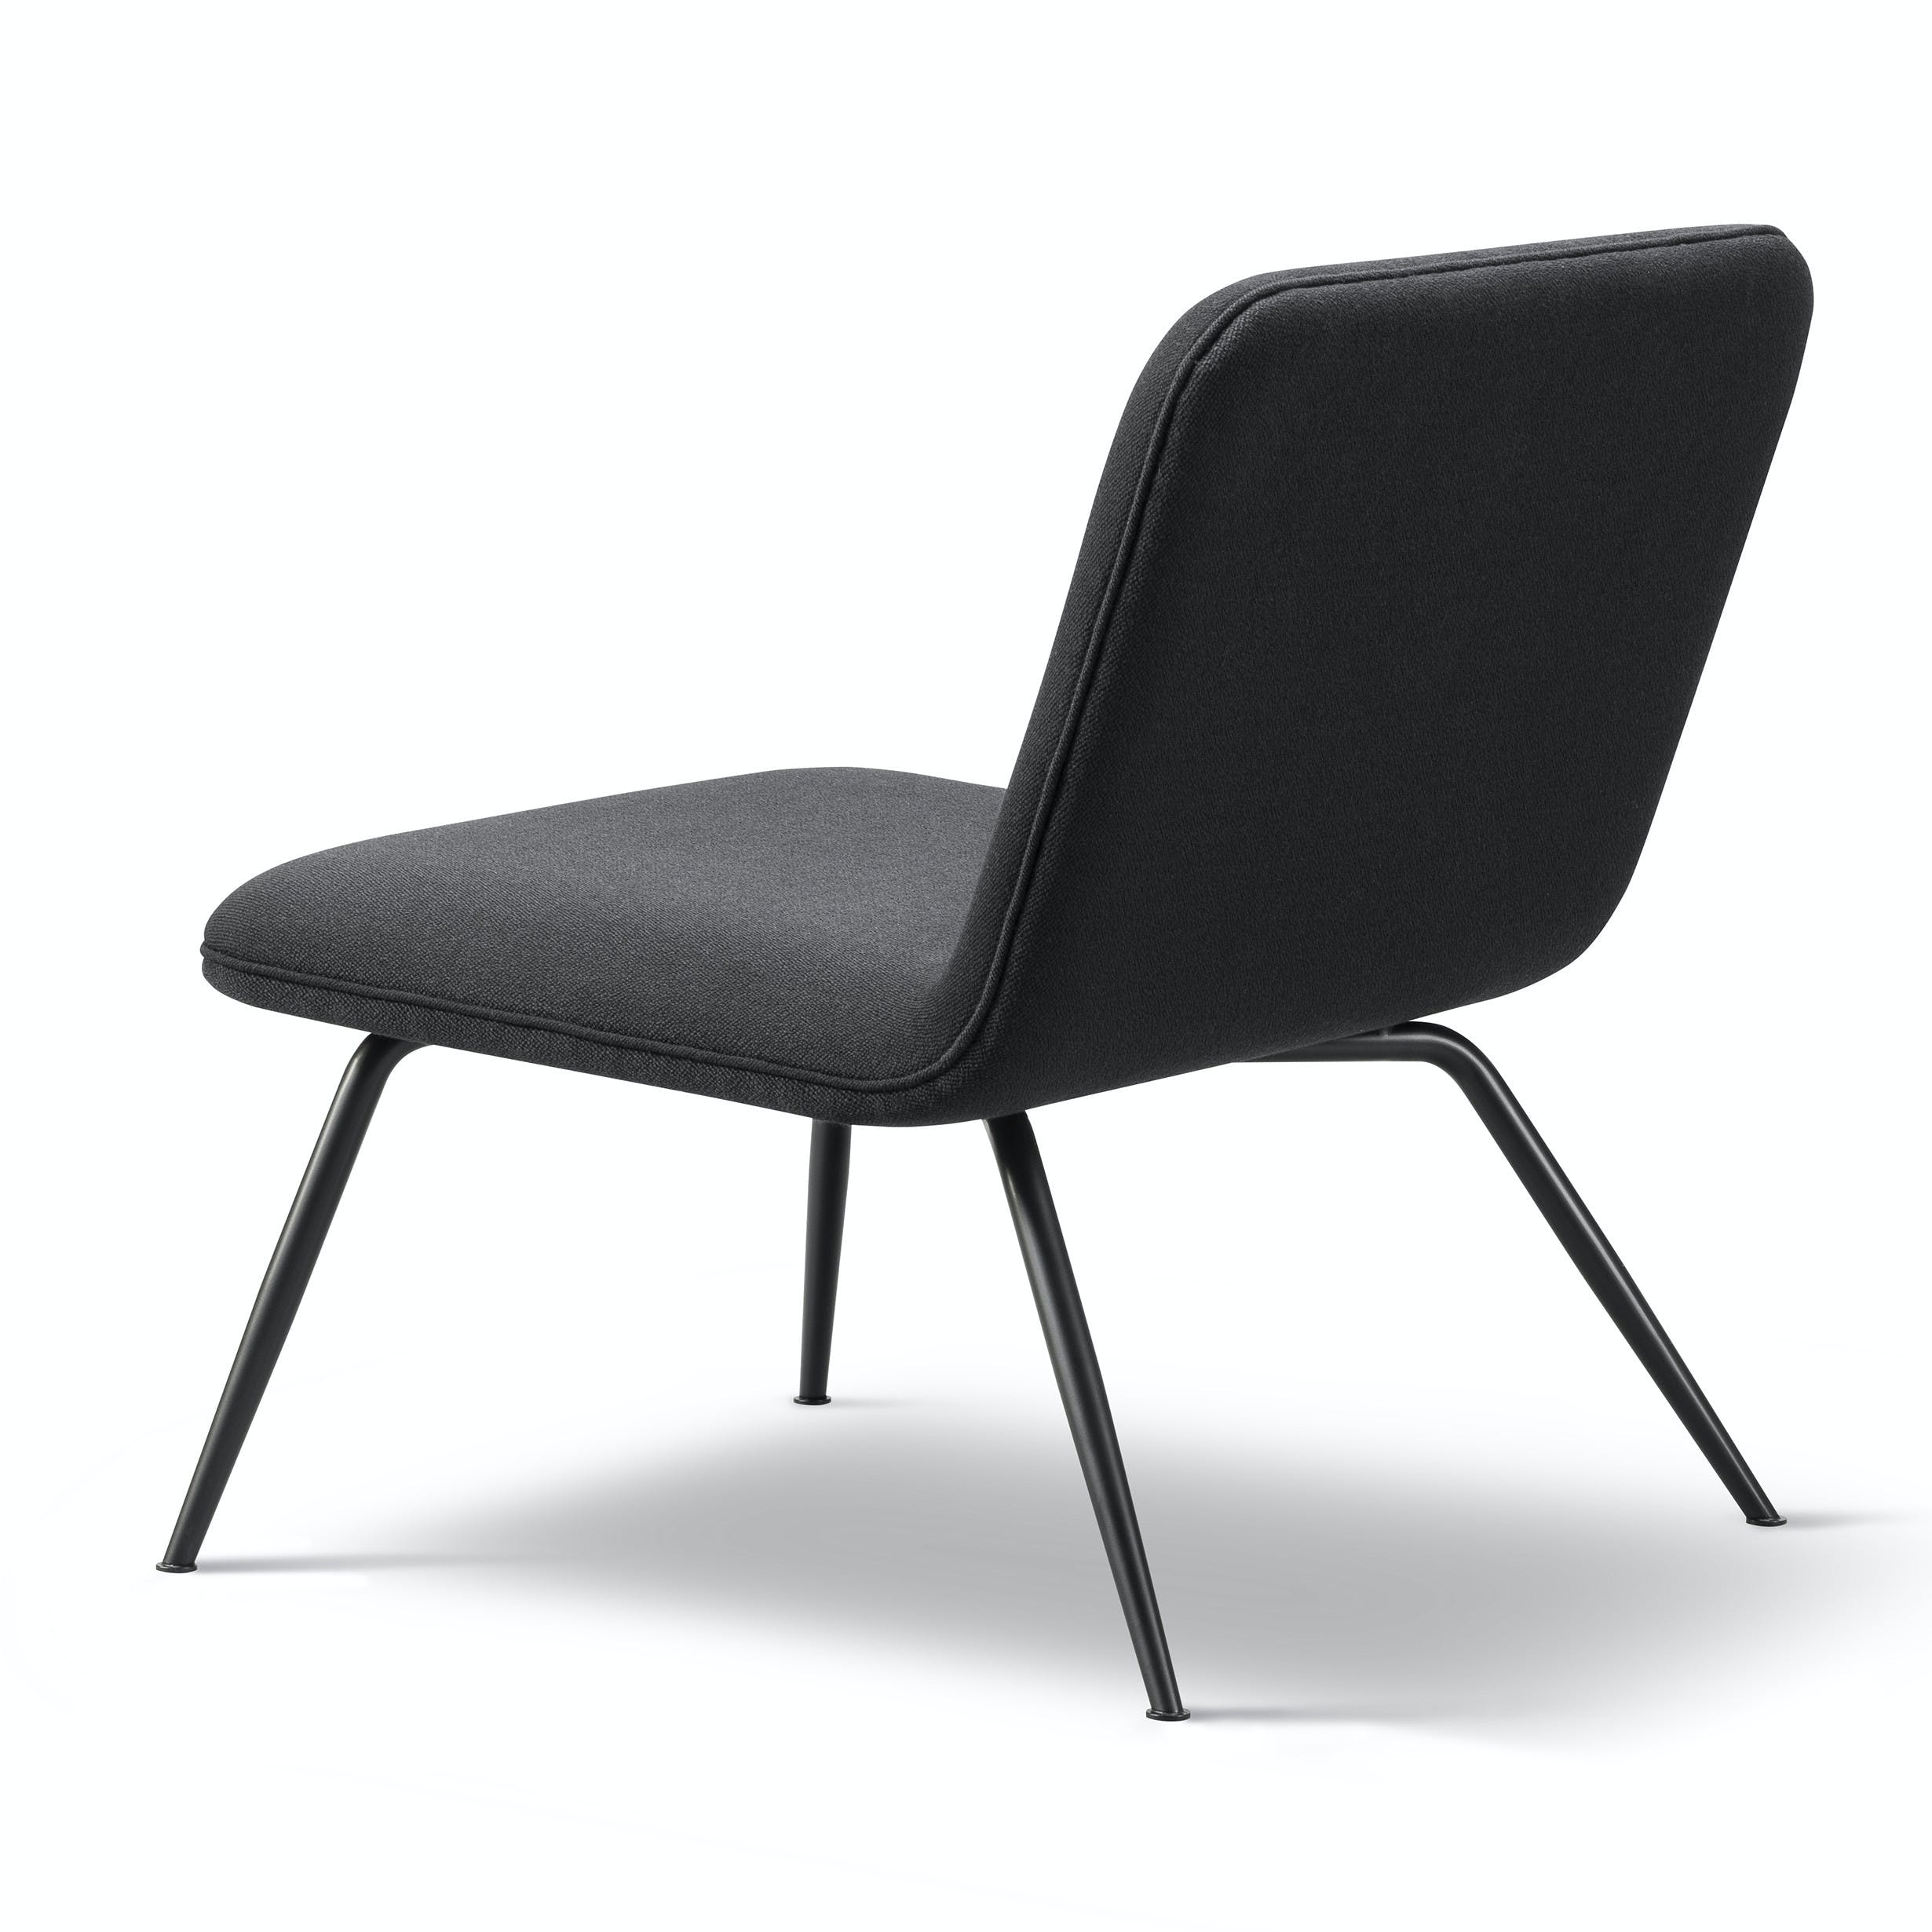 Fredericia Furniture Spine Lounge Metal Angle Haute Living